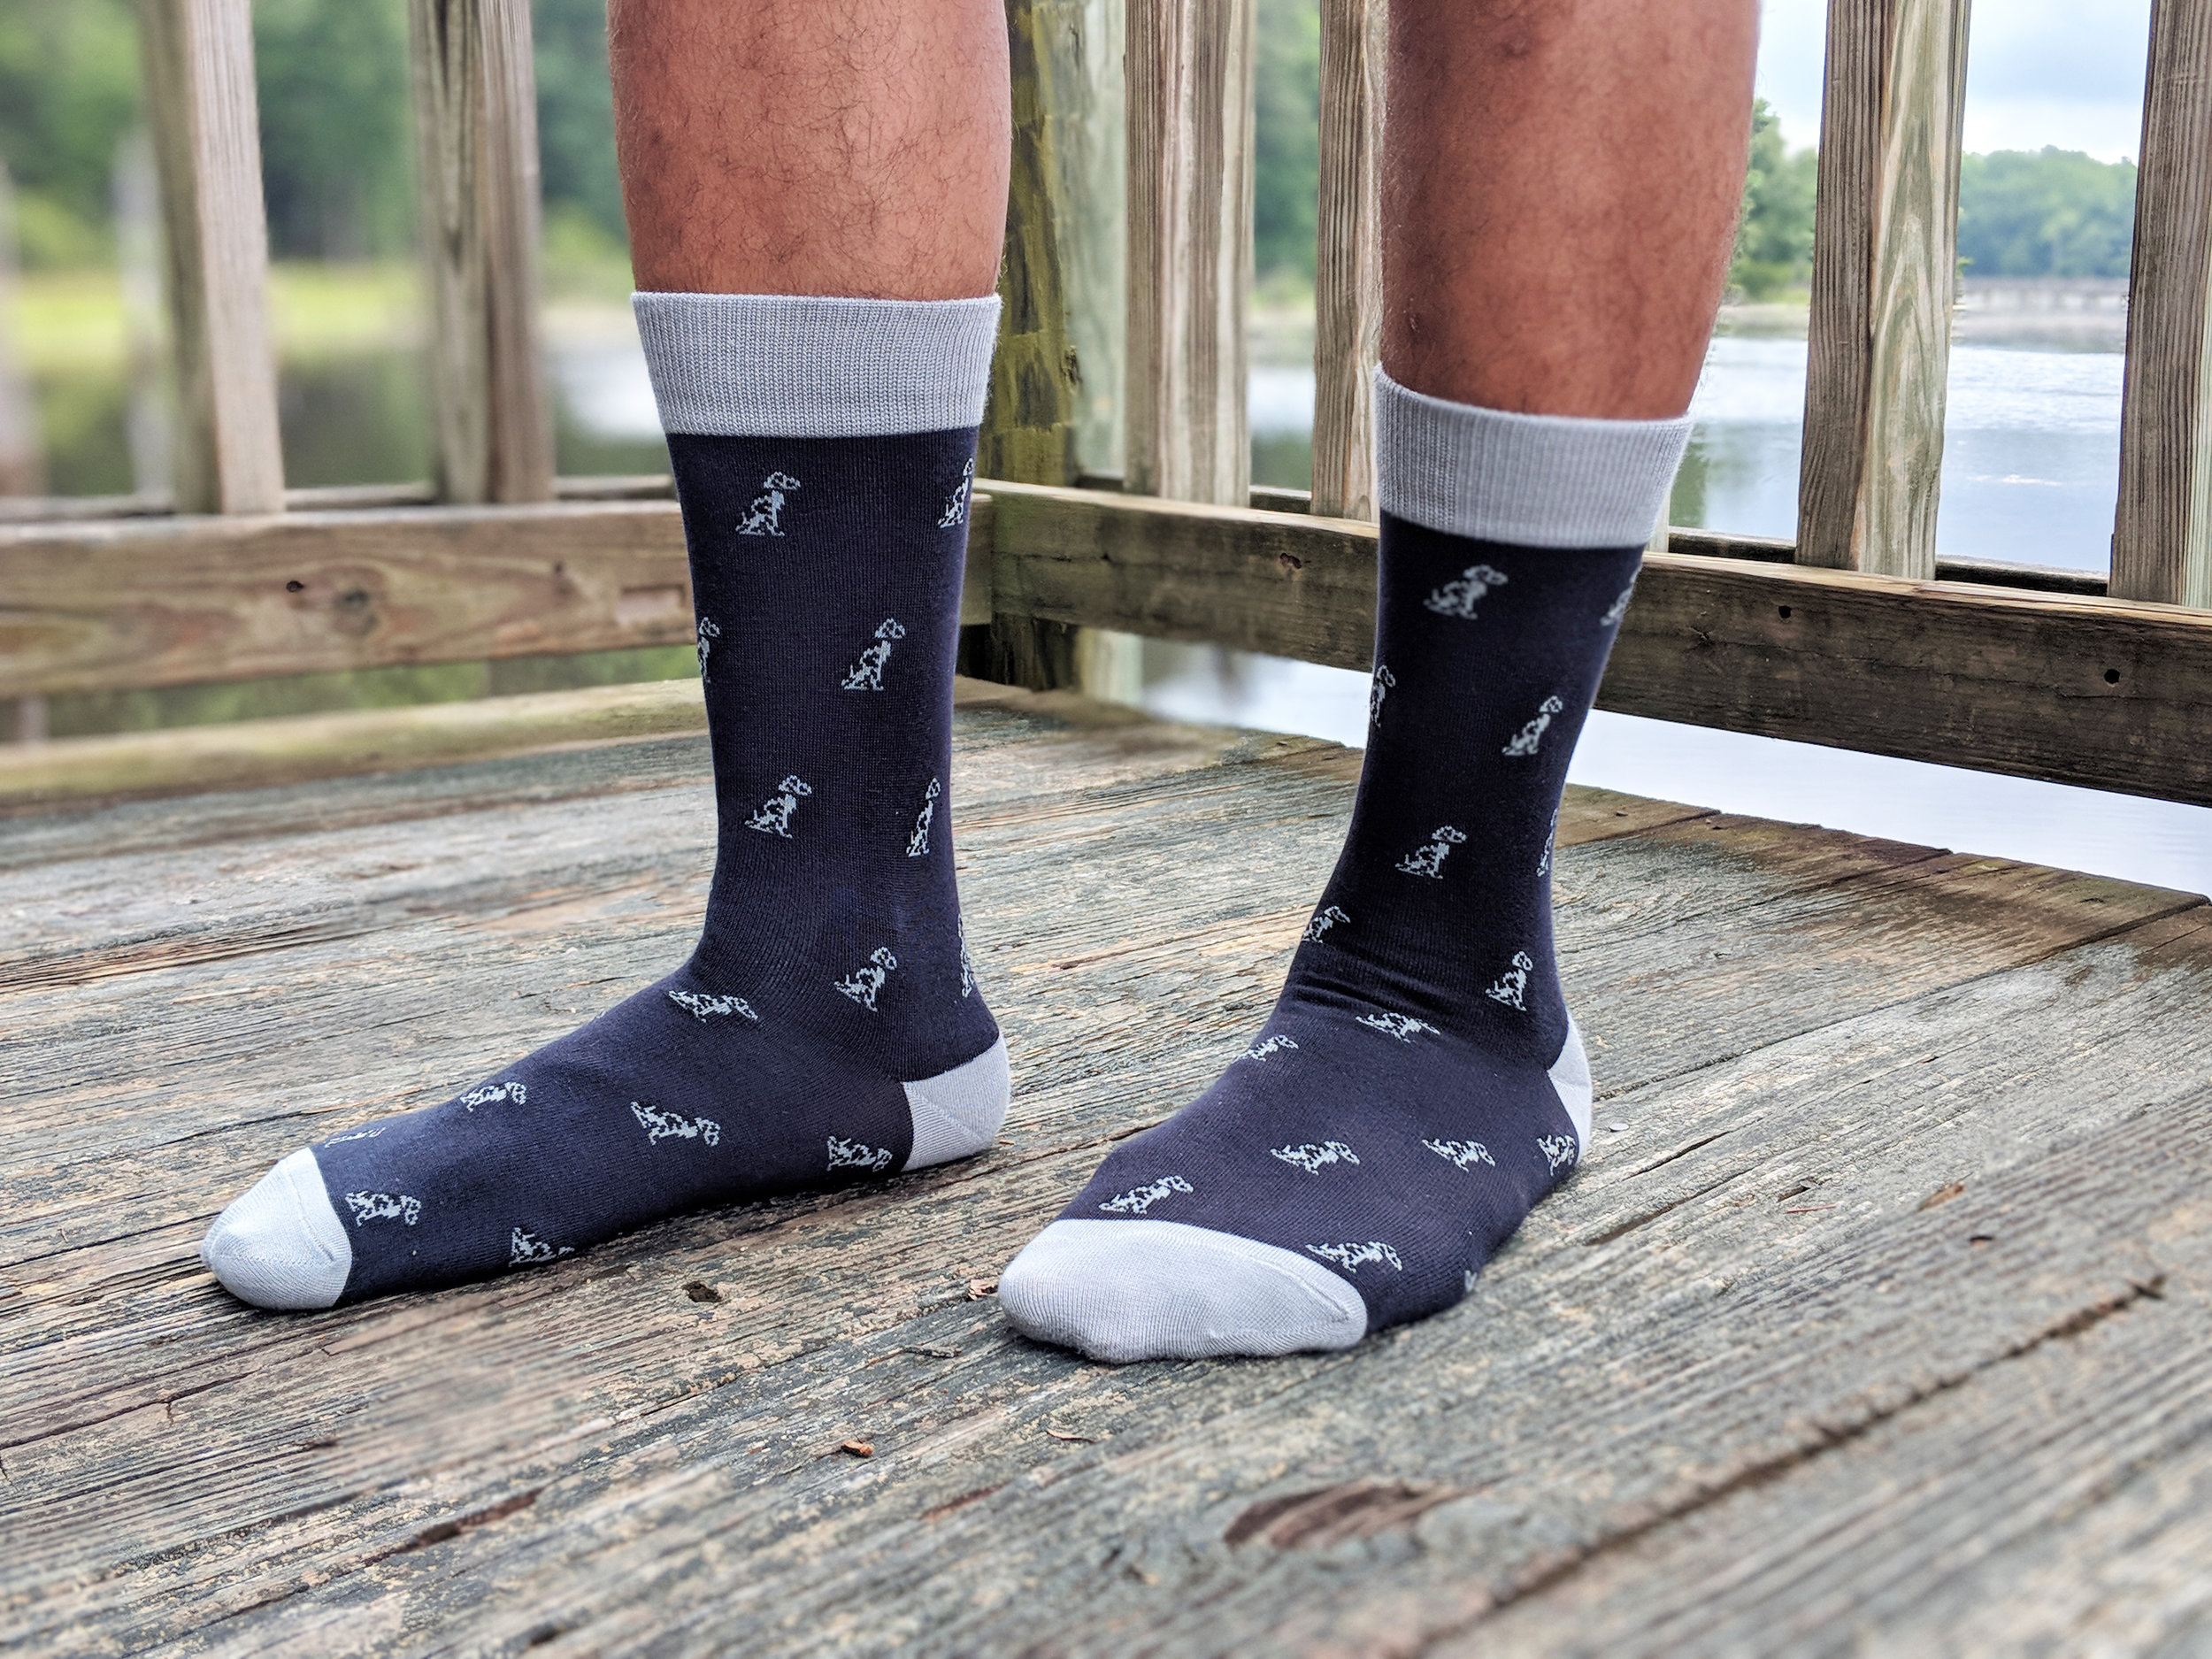 """Smith Dalmatian"" style pictured here - a weekend-worthy style, where you want to dress and feel your best. Photo Credit: The Sock Review"